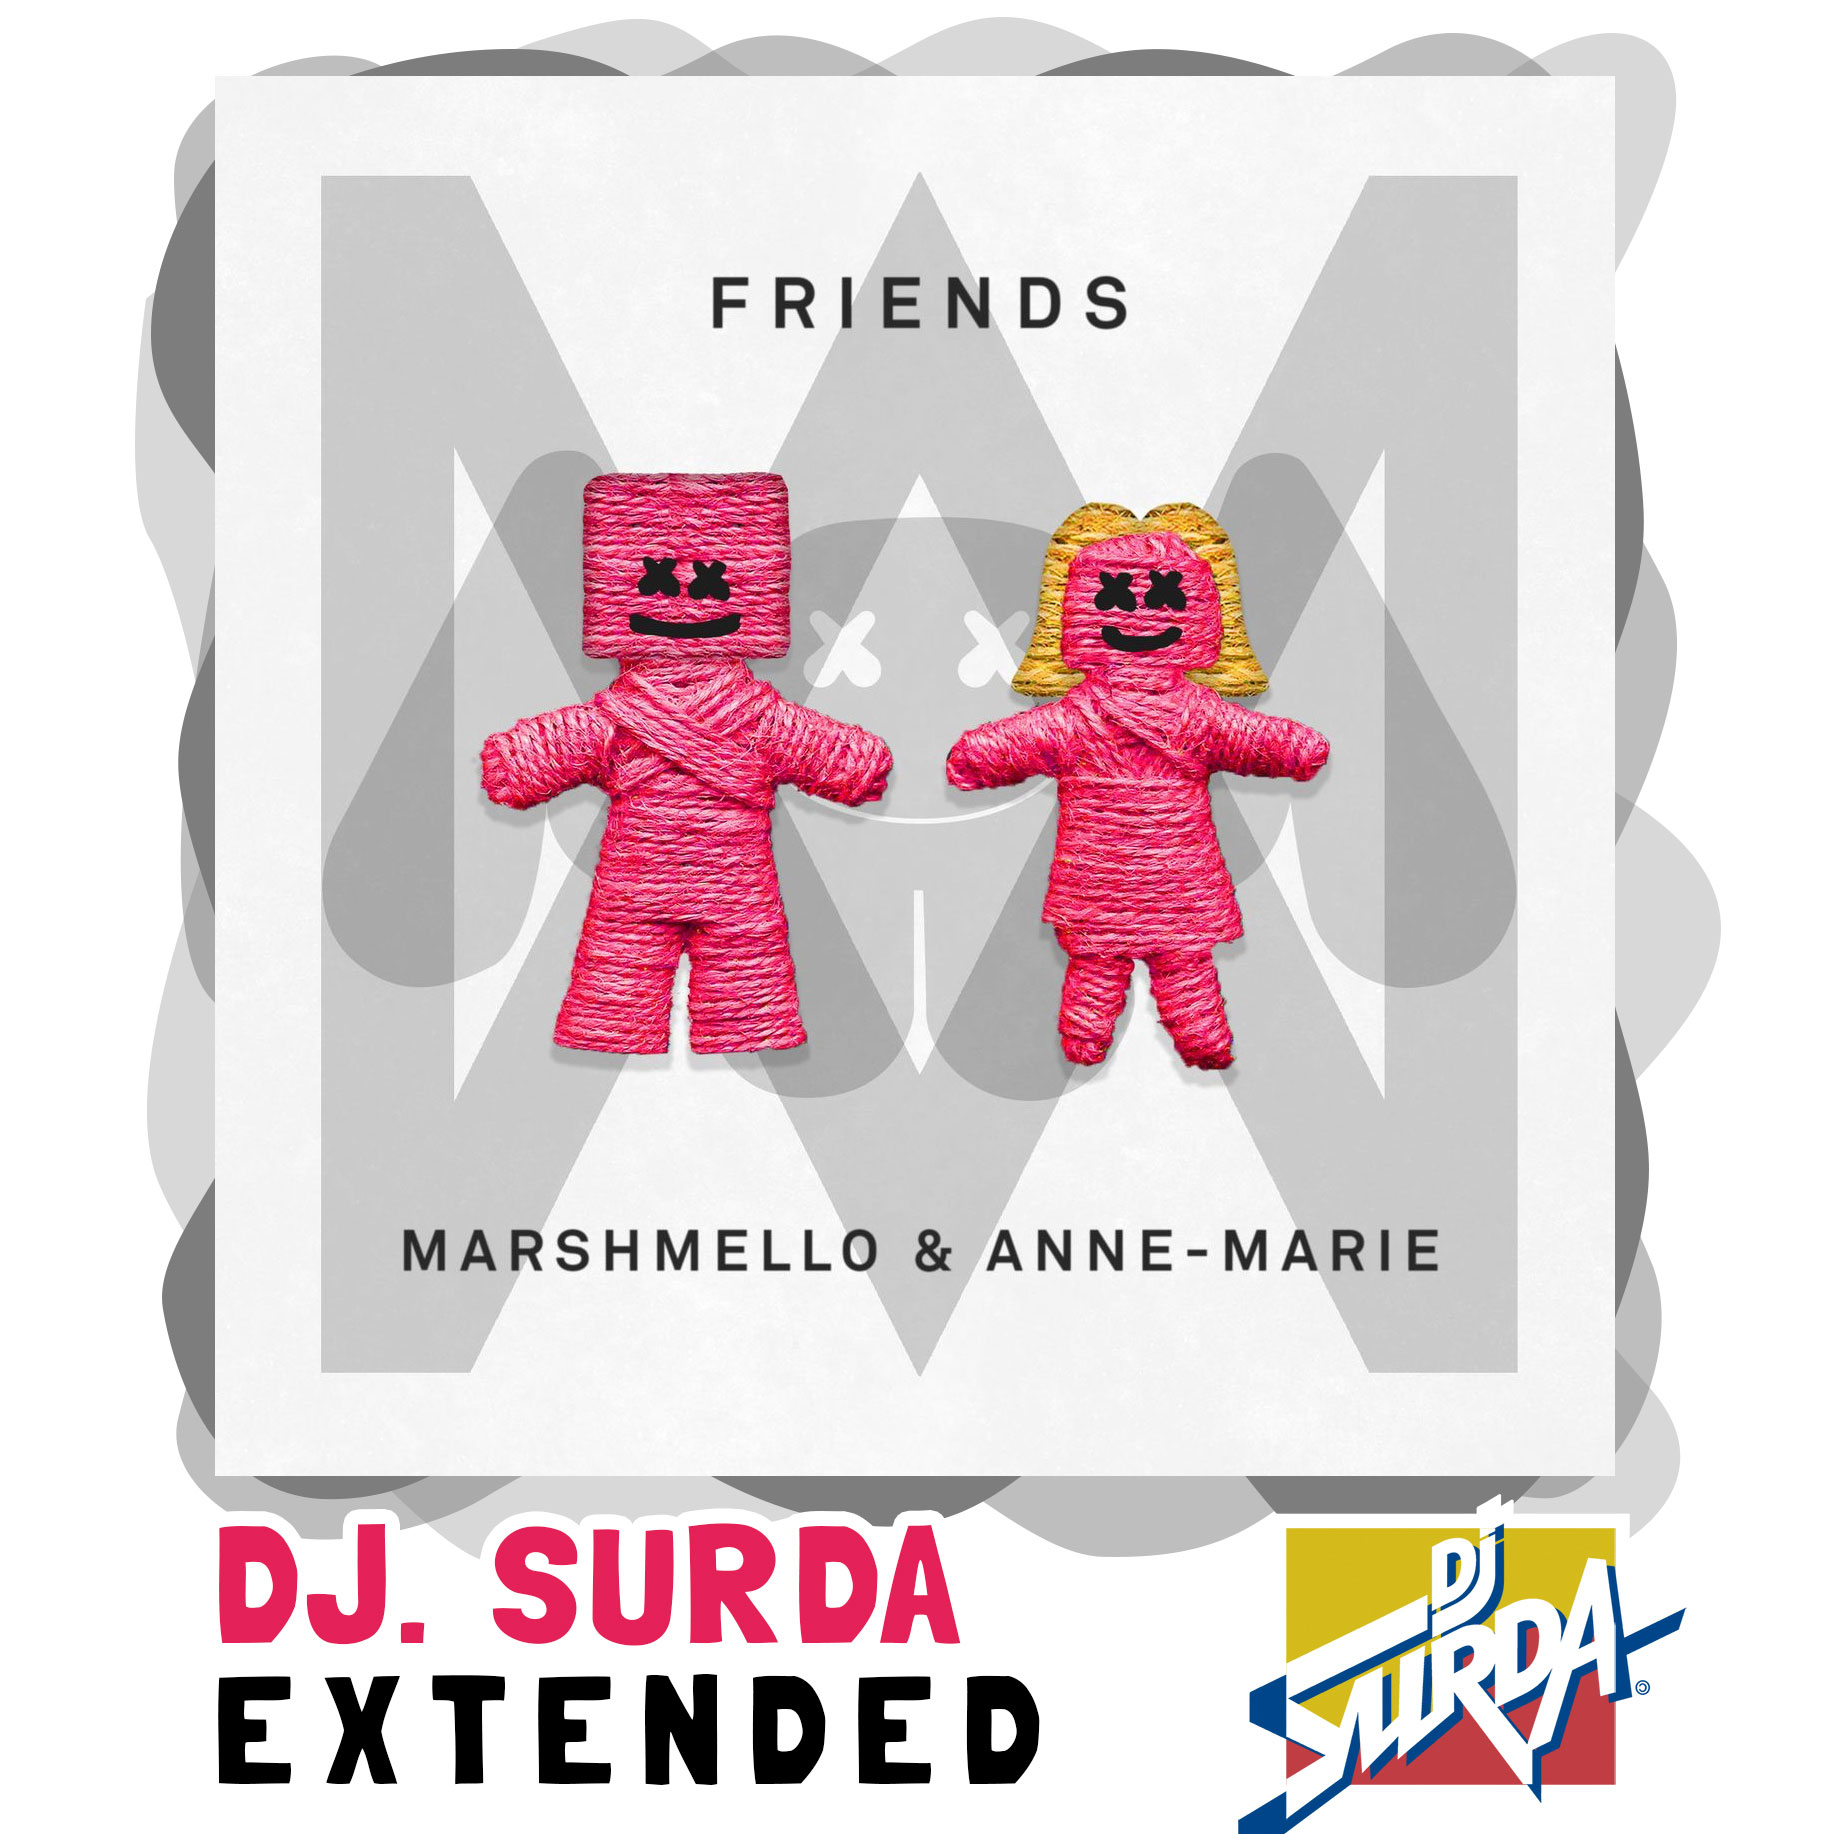 Marshmello & Anne-Marie – FRIENDS (Dj. Surda Extended Version)